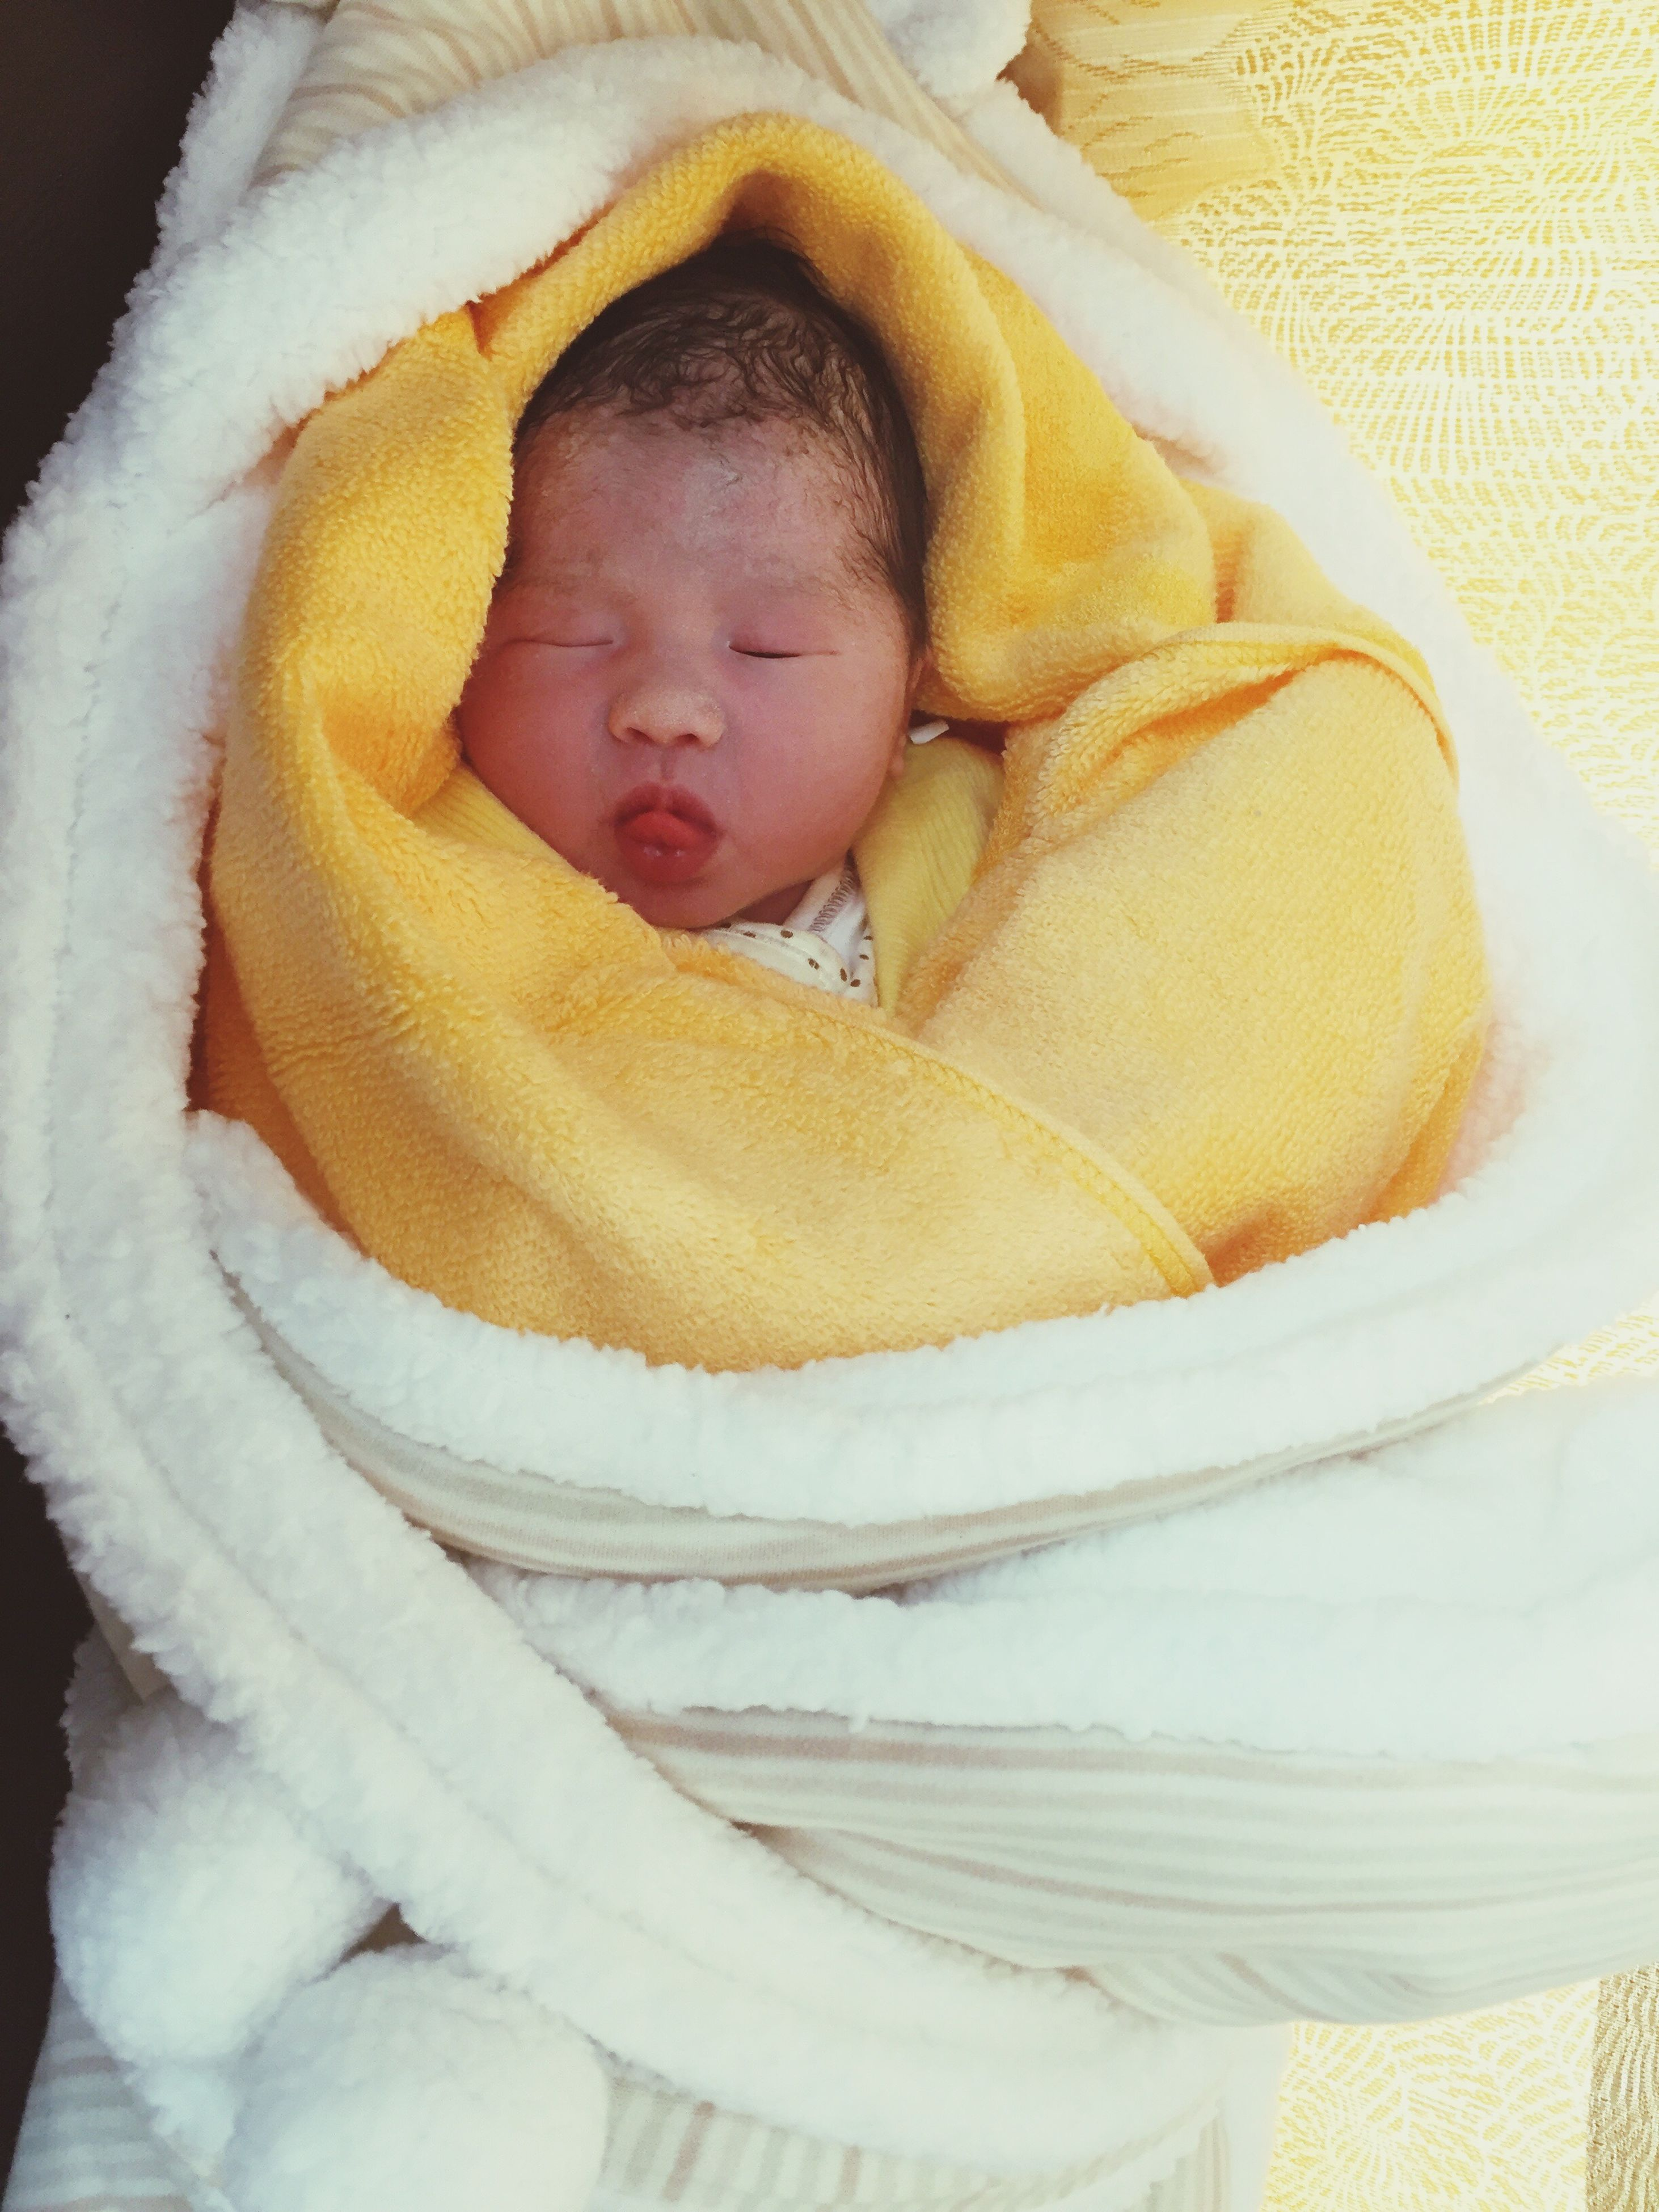 sleeping, real people, wrapped in a blanket, lying down, babyhood, one person, baby, newborn, close-up, indoors, day, people